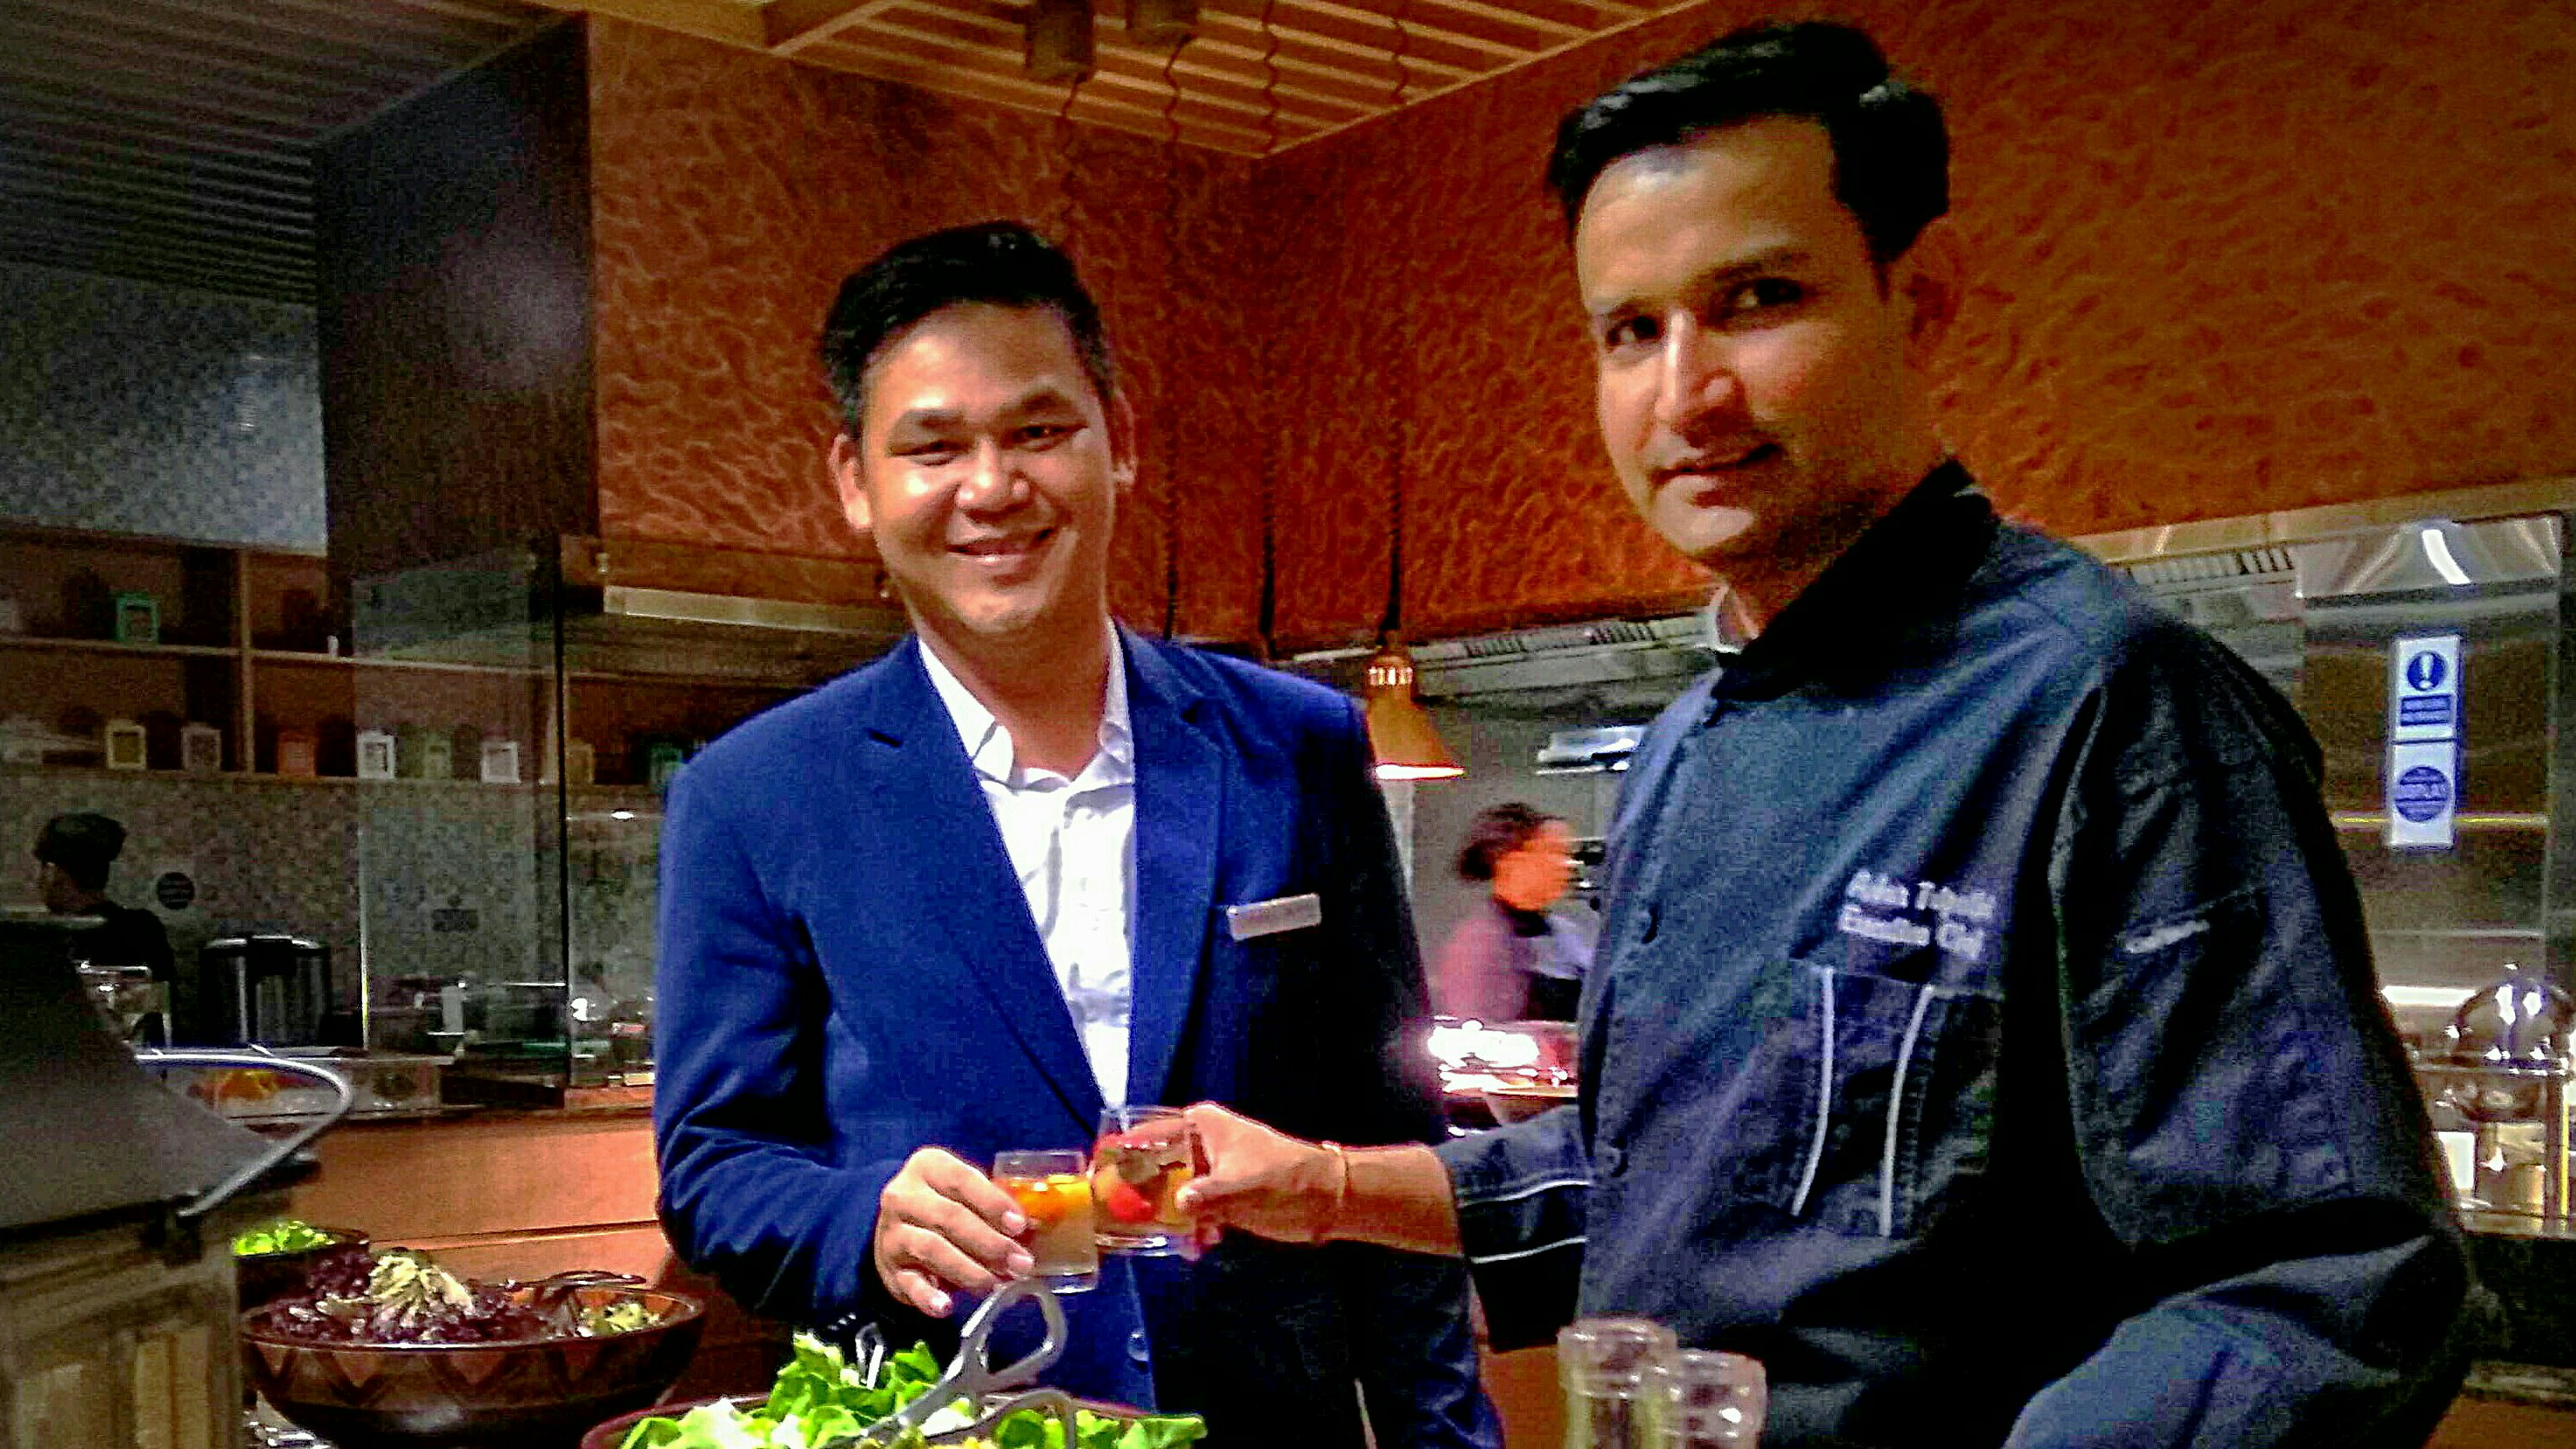 Sastra Wijaya, Senior Sales Manager dan Ankur Tripathi, Executive Chef Radisson Golf & Convention Center. (netrakepri.com)